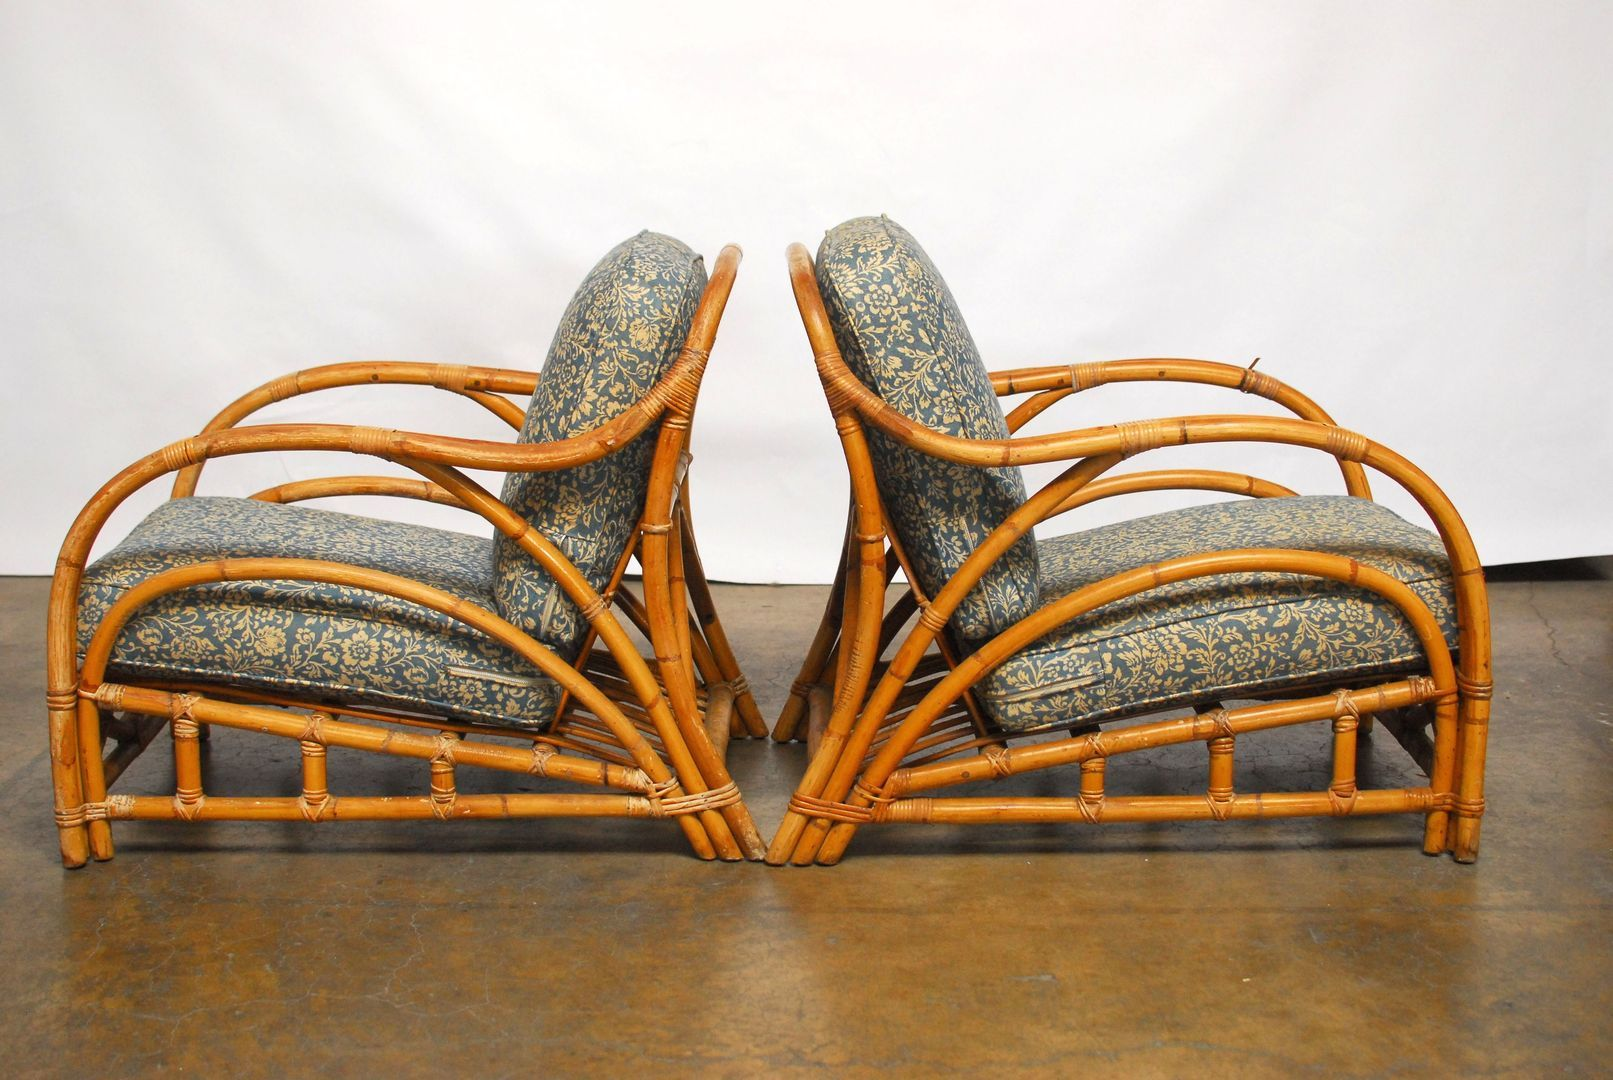 Pair of chic art deco style bamboo lounge chair featuring a low